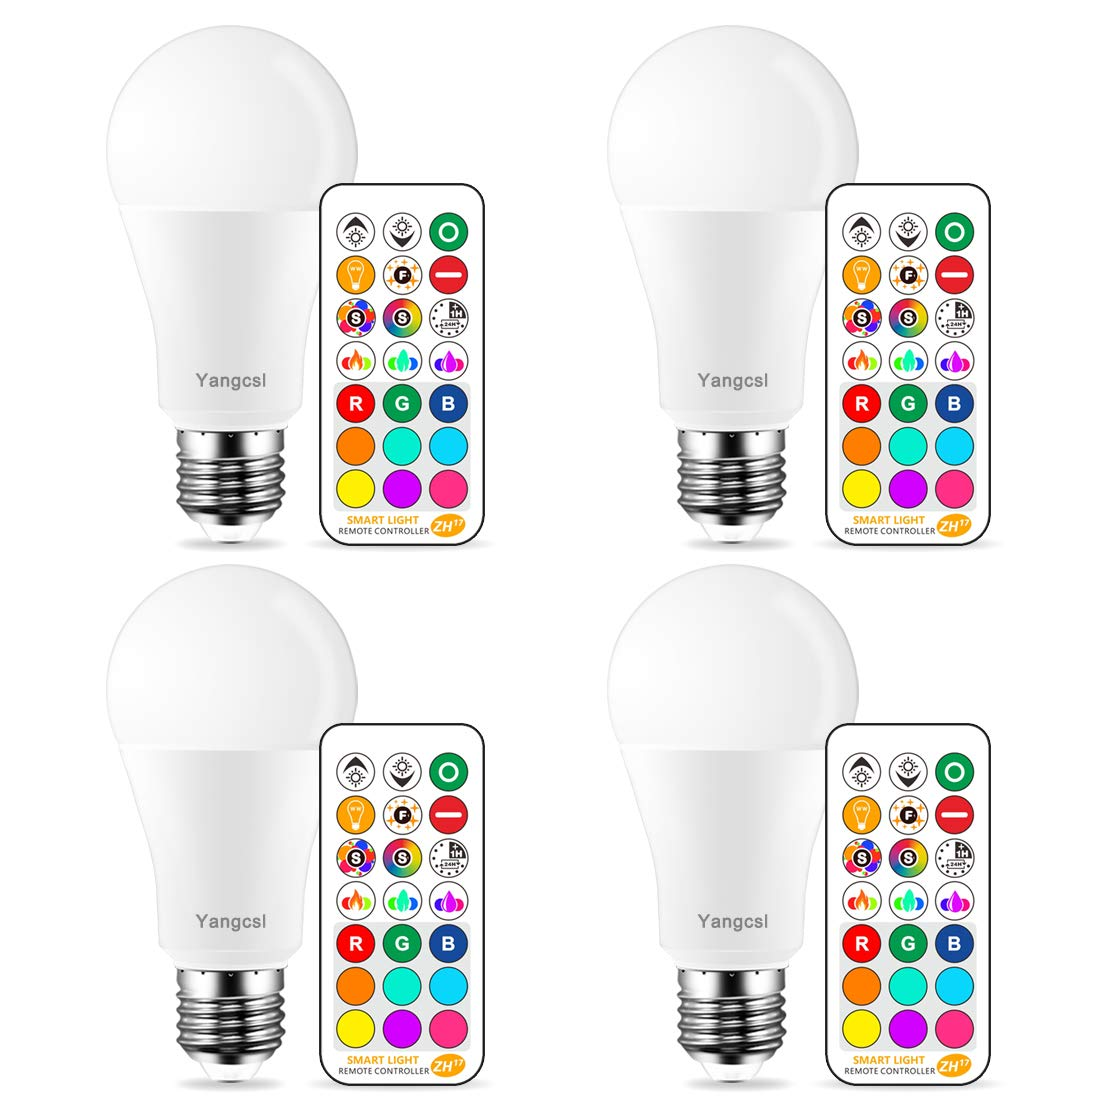 Yangcsl LED Light Bulbs 75W Equivalent, RGB Color Changing Light Bulb, 6 Moods - Memory - Sync - Dimmable, A19 E26 Screw Base, Timing Remote Control Included (Pack of 4)